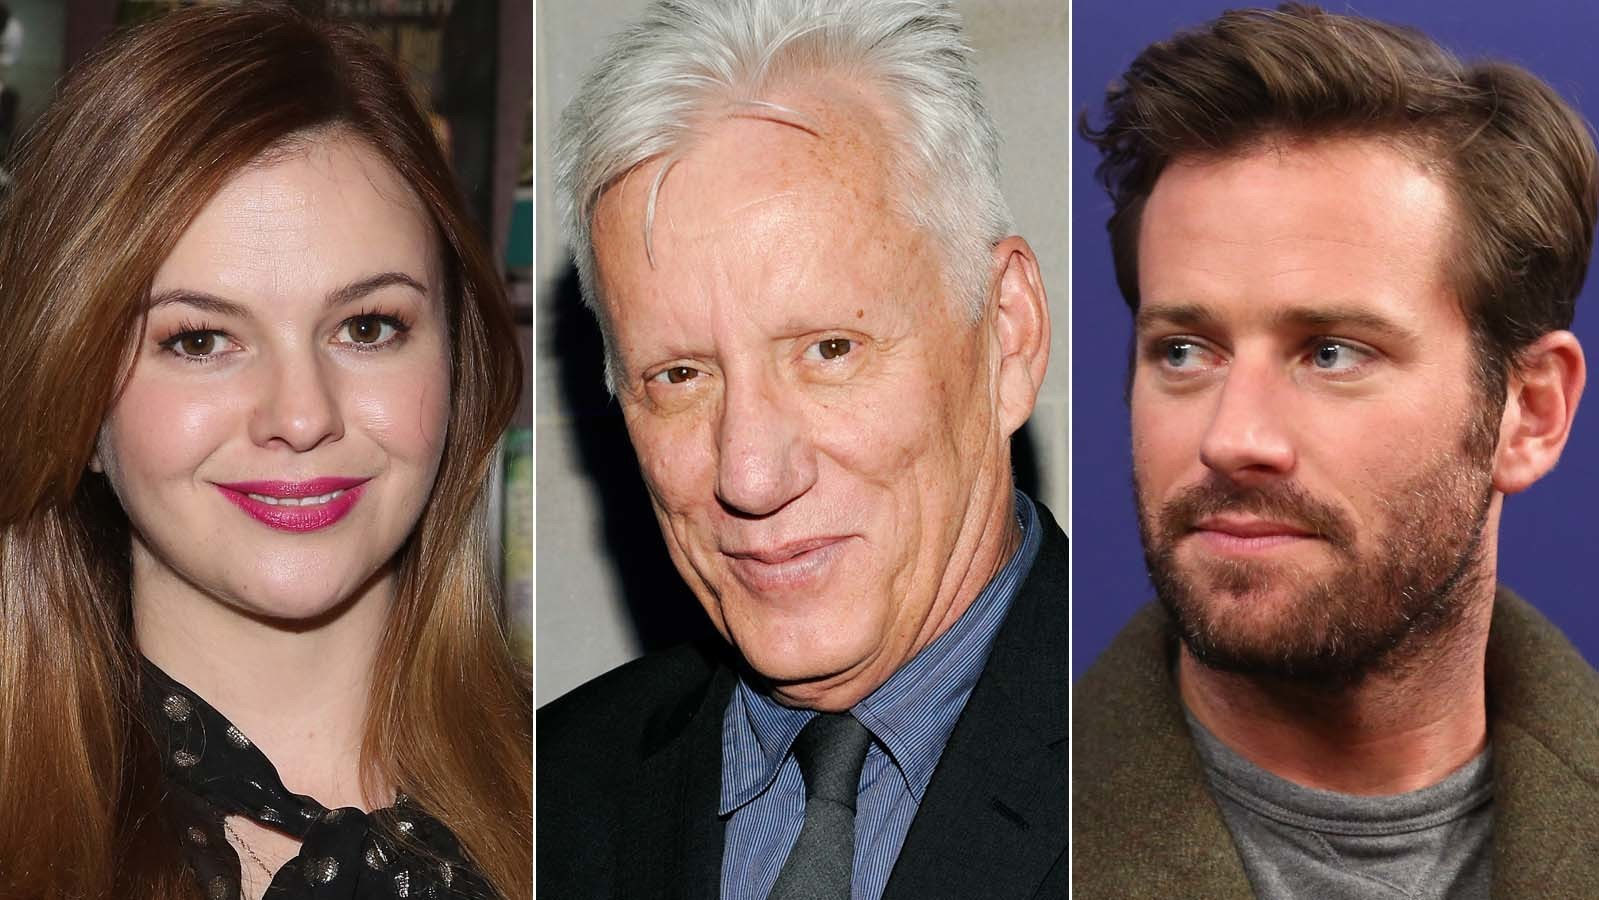 Amber Tamblyn, James Woods and Armie Hammer. (Robin Marchant / Getty Images; Evan Agostini / Associated Press; Rich Polk / Getty Images)